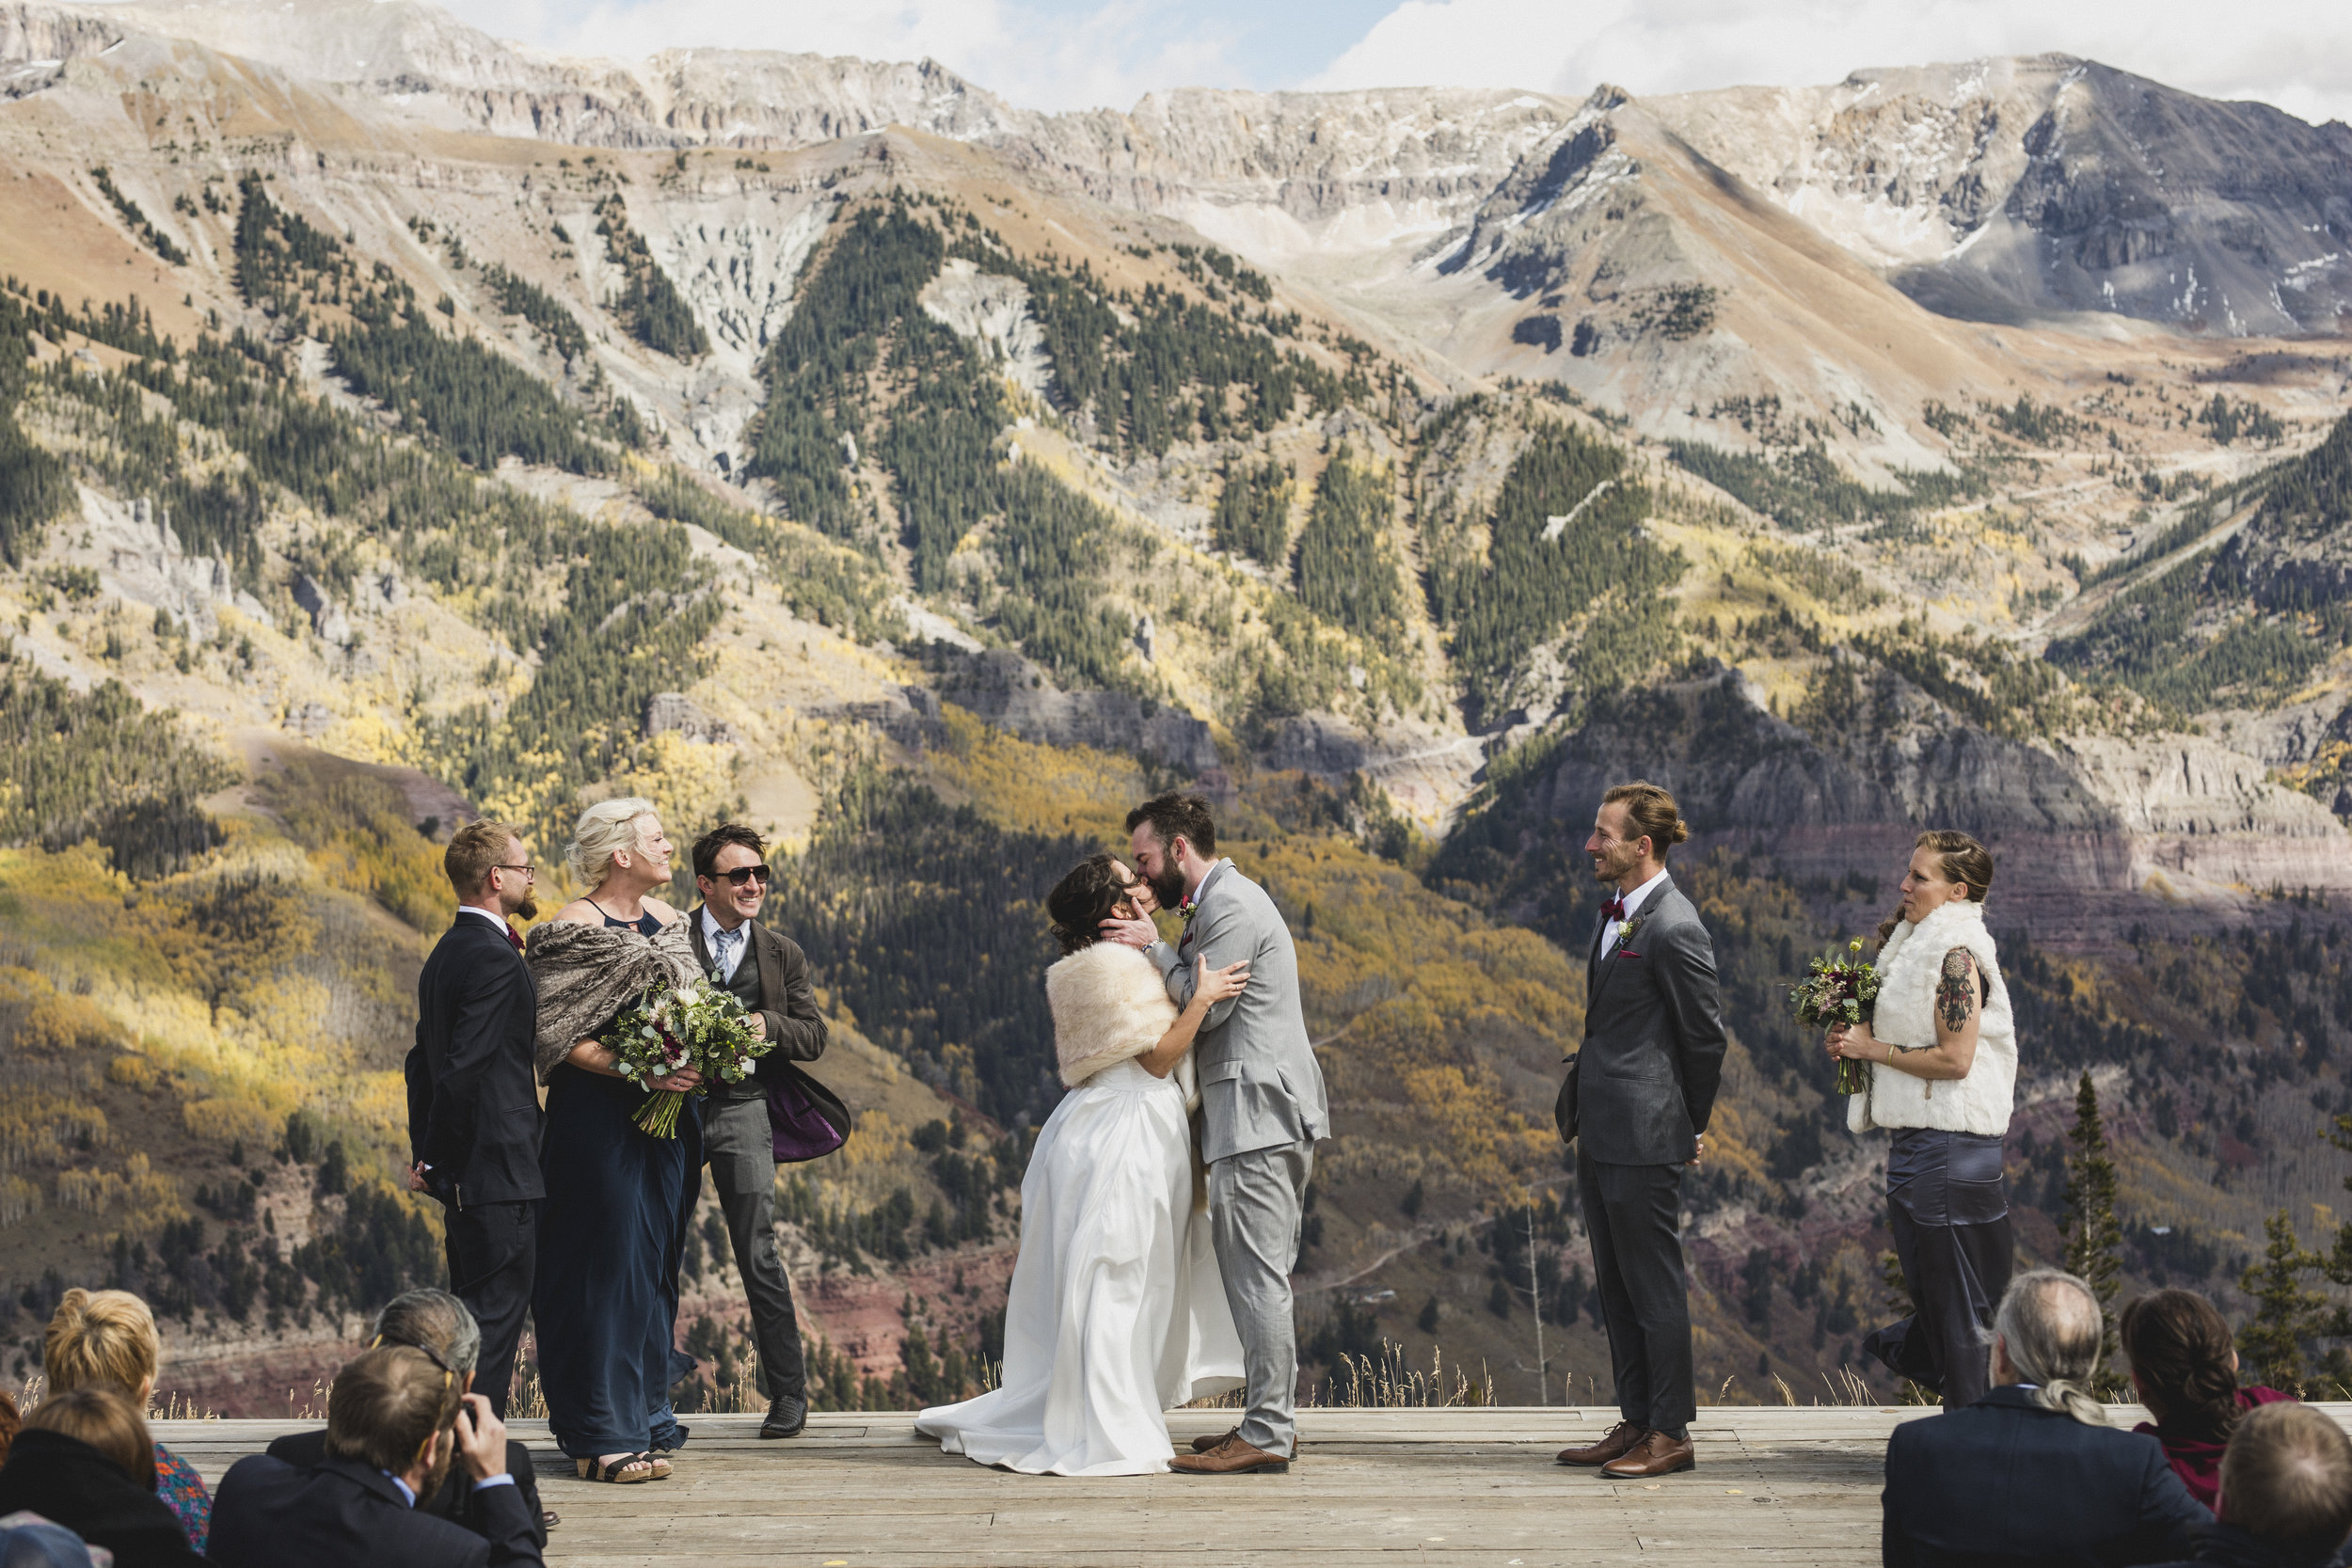 NE-LeahandAshtonphotography-Telluride-Wedding-Photography-9412.jpg